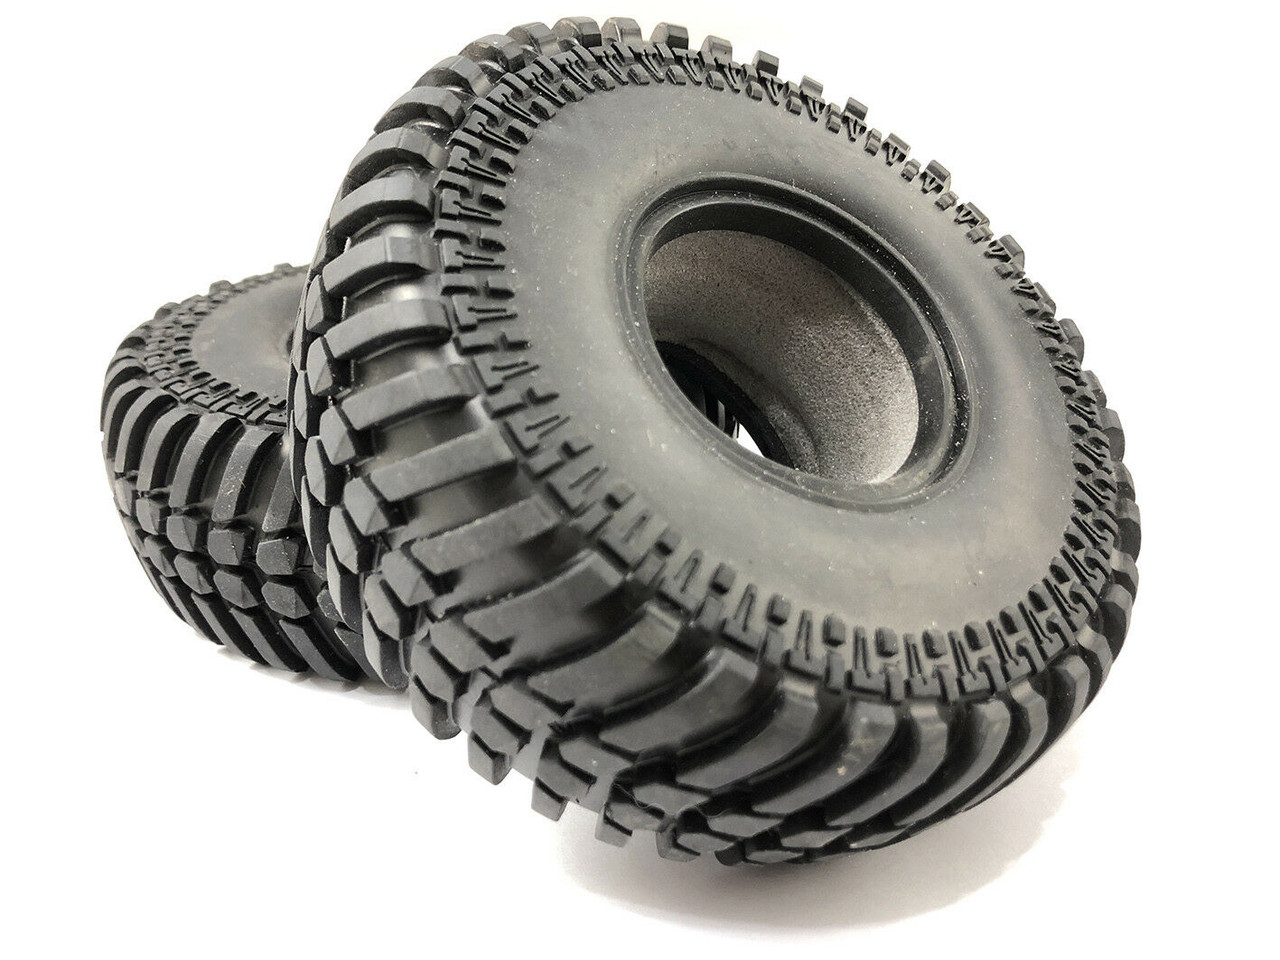 Louise Ardent 1.9 Rock Crawler Tire / Super Soft Compound ( Duratrax Approach )